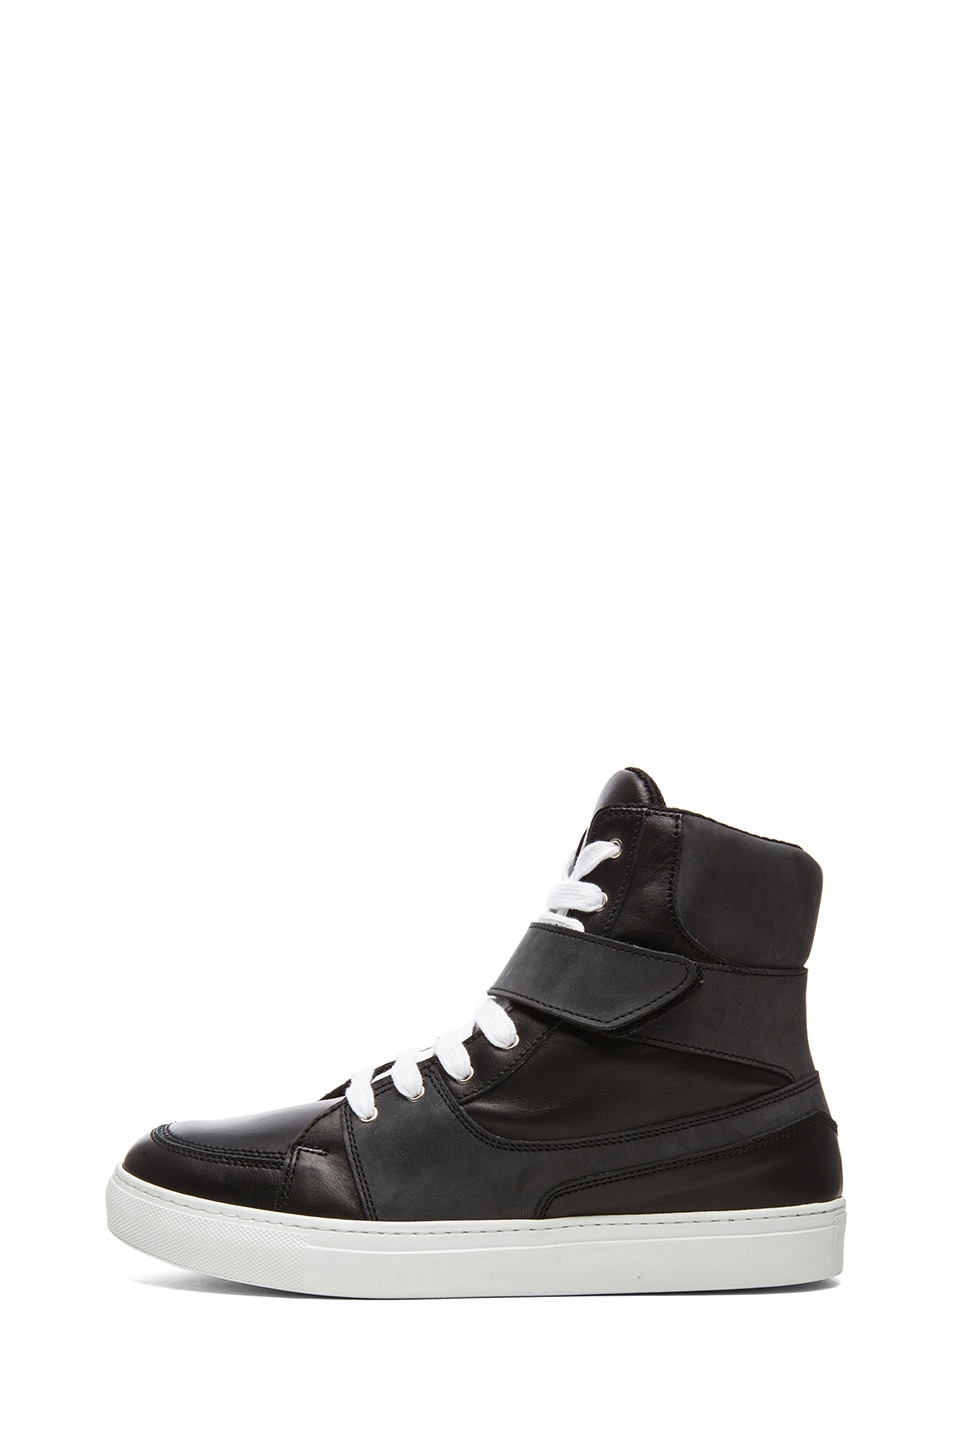 5e34447c5f Image 1 of Kris Van Assche Calfskin Leather High Top Sneaker in Black